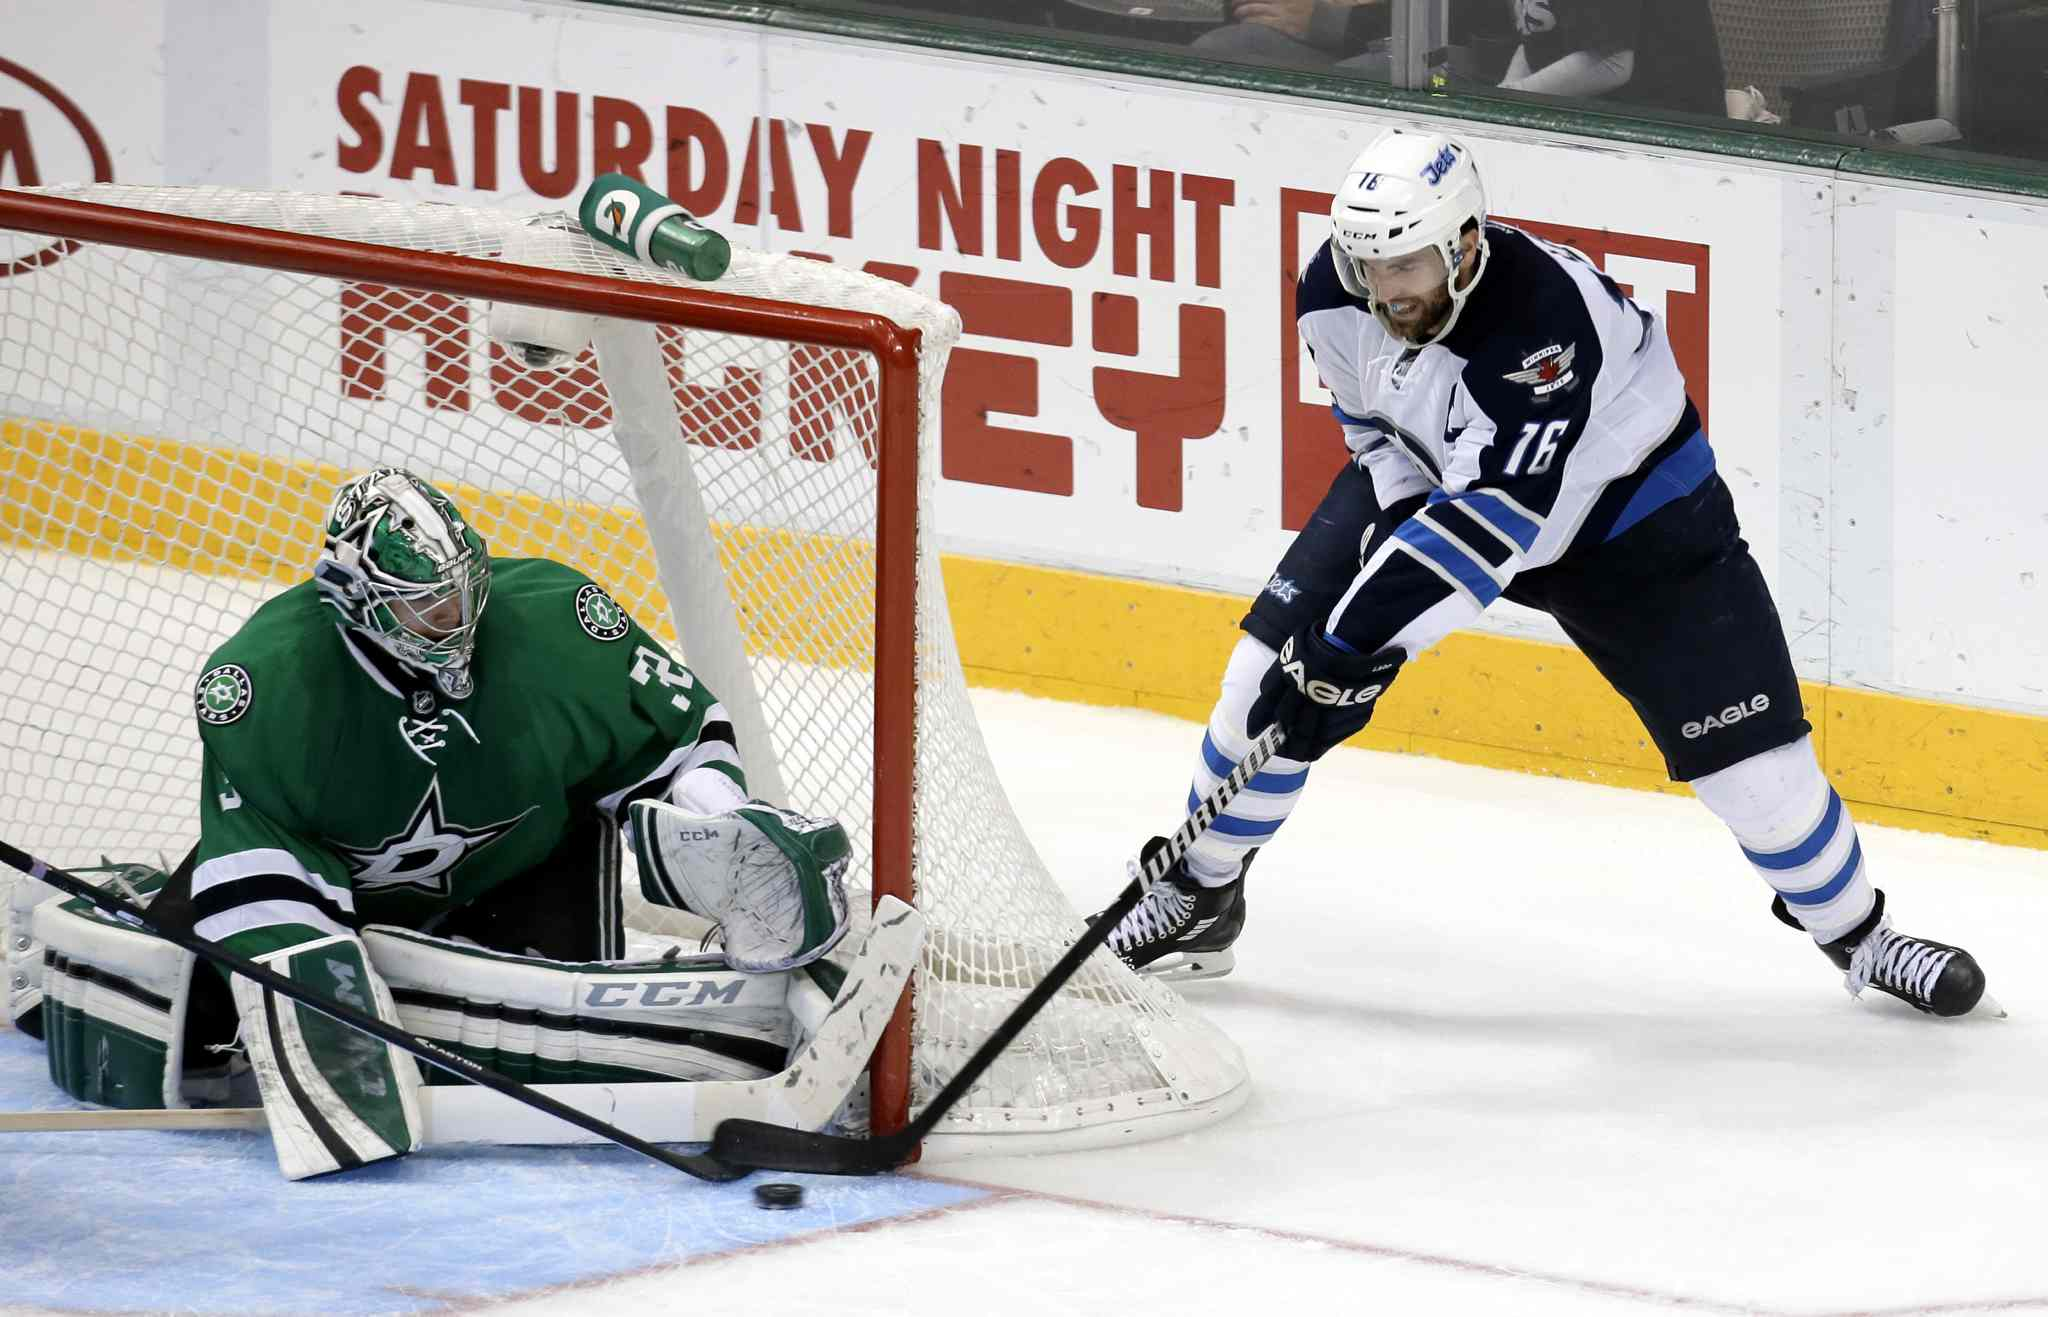 Dallas Stars goalie Kari Lehtonen blocks a shot from Andrew Ladd in the third period.